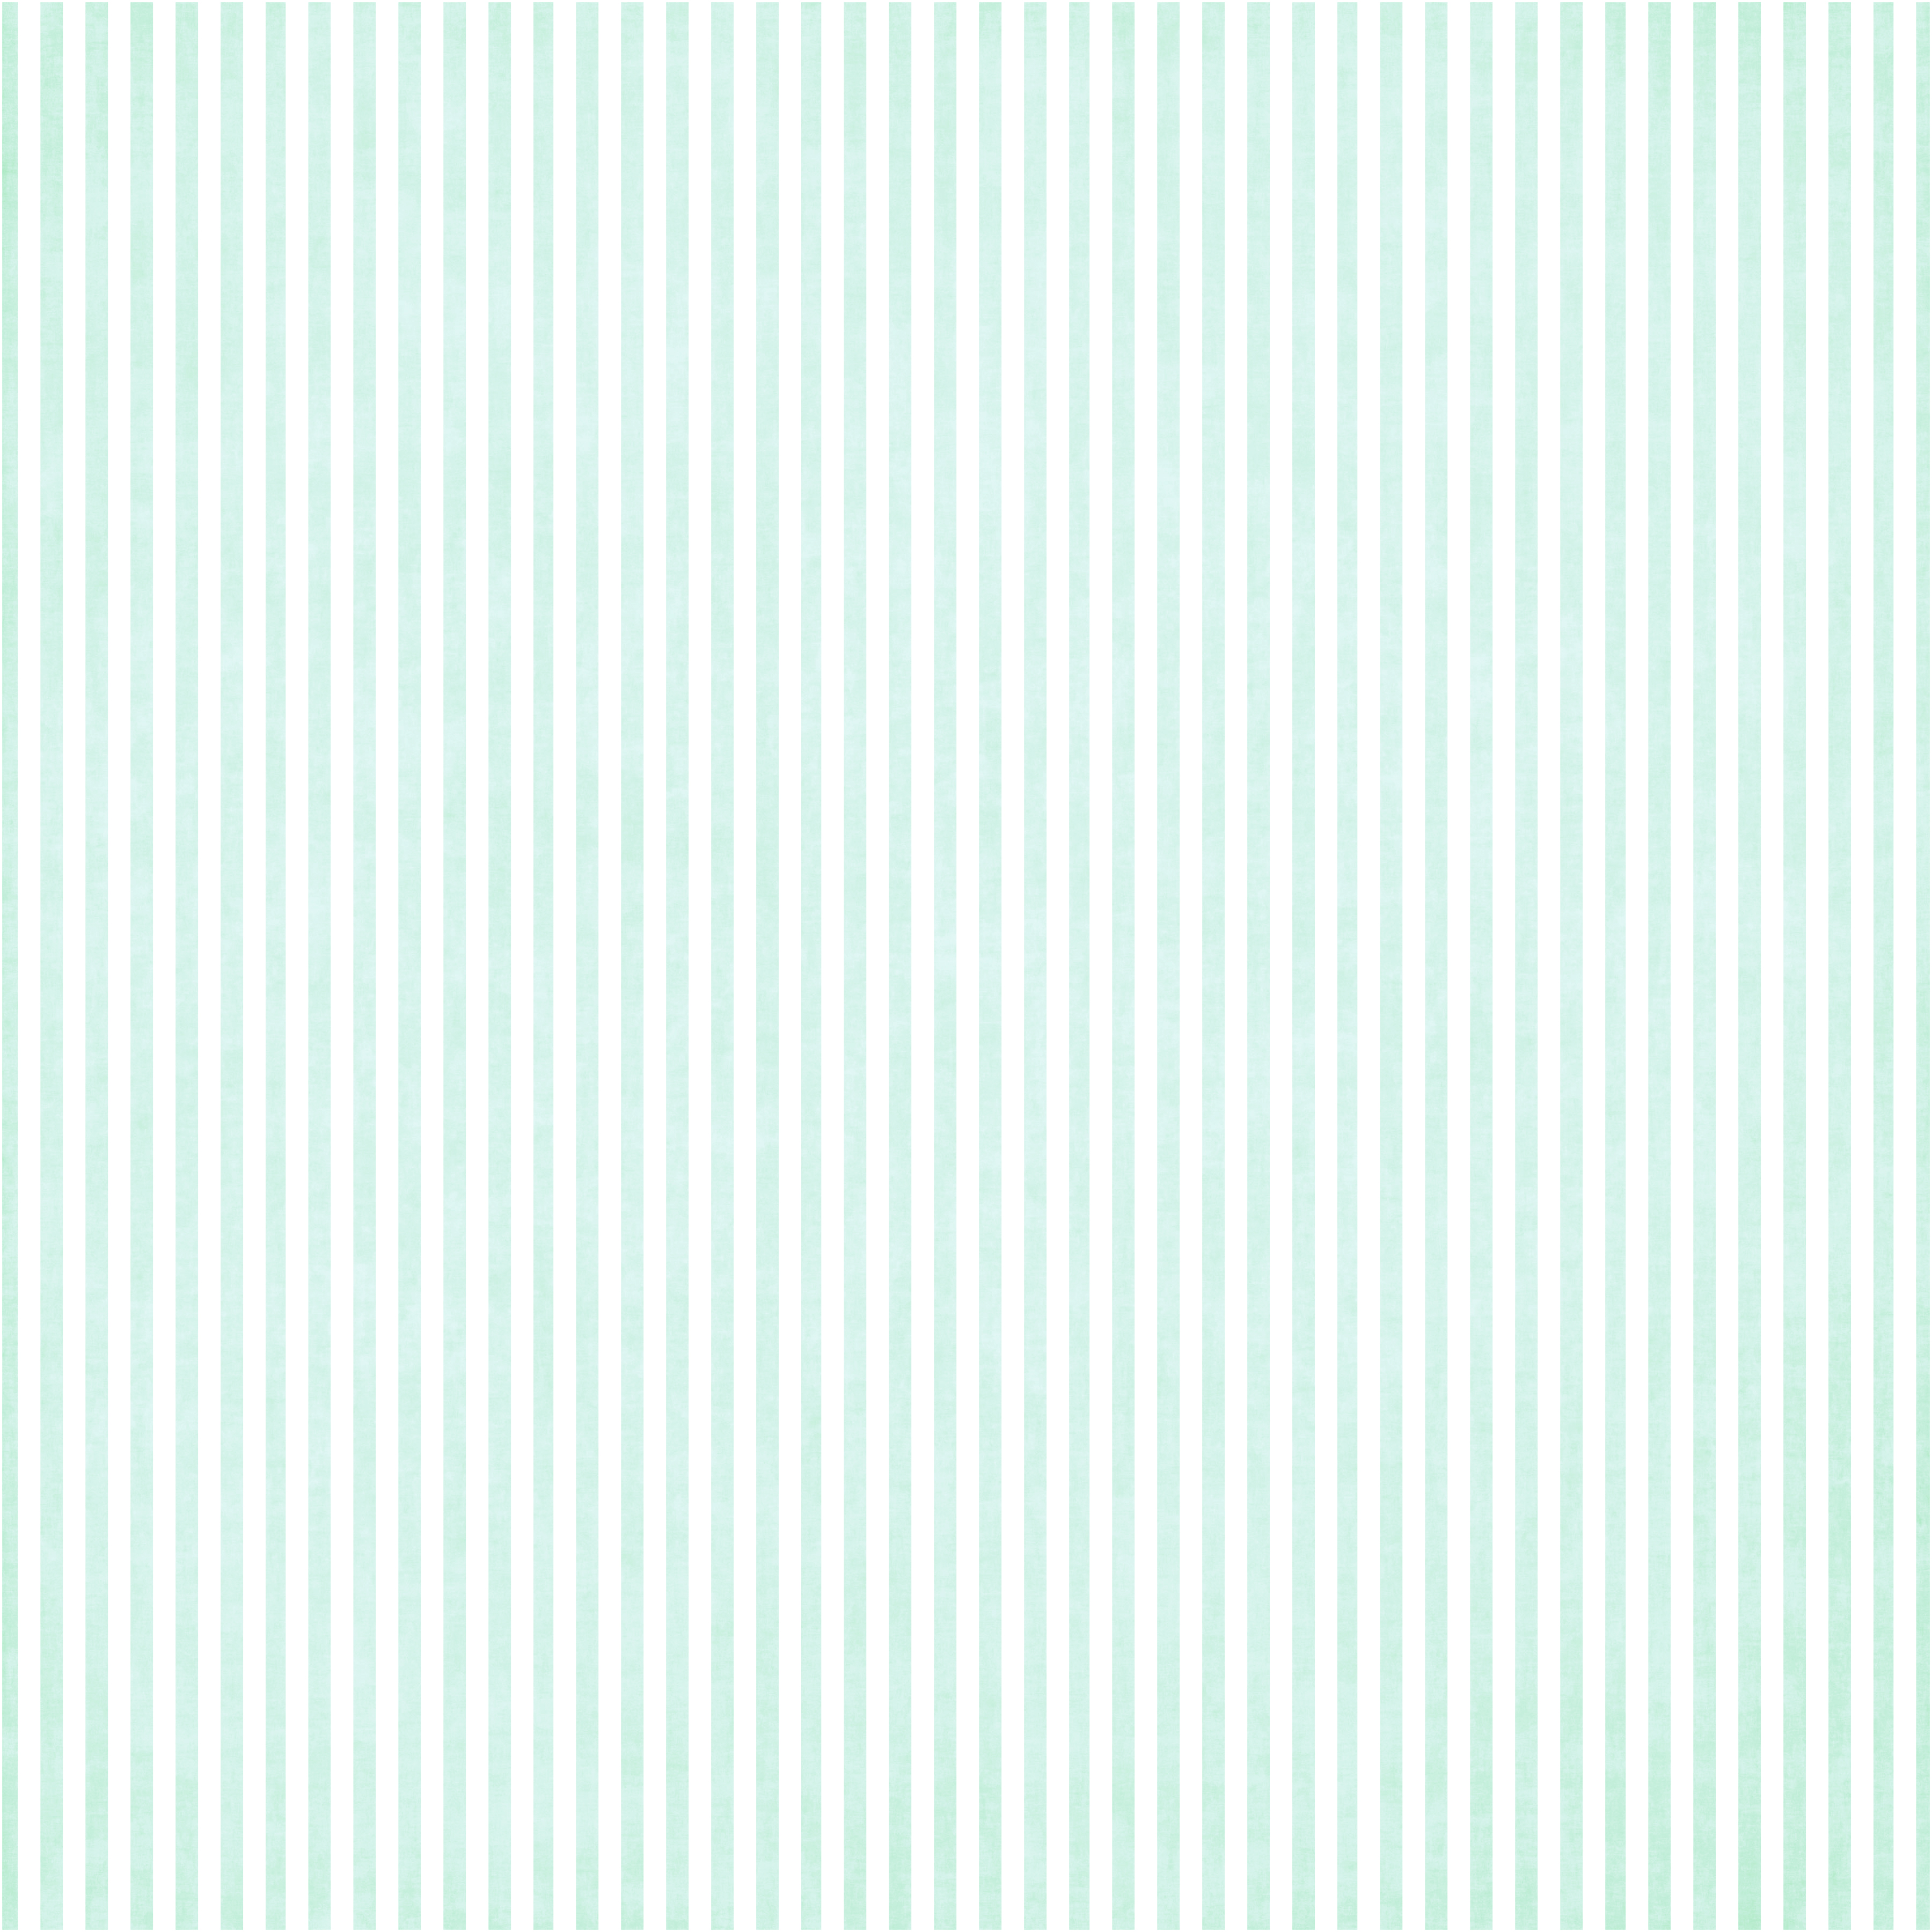 Background Pattern, Abstract, Technology, Origami, Picture, HQ Photo